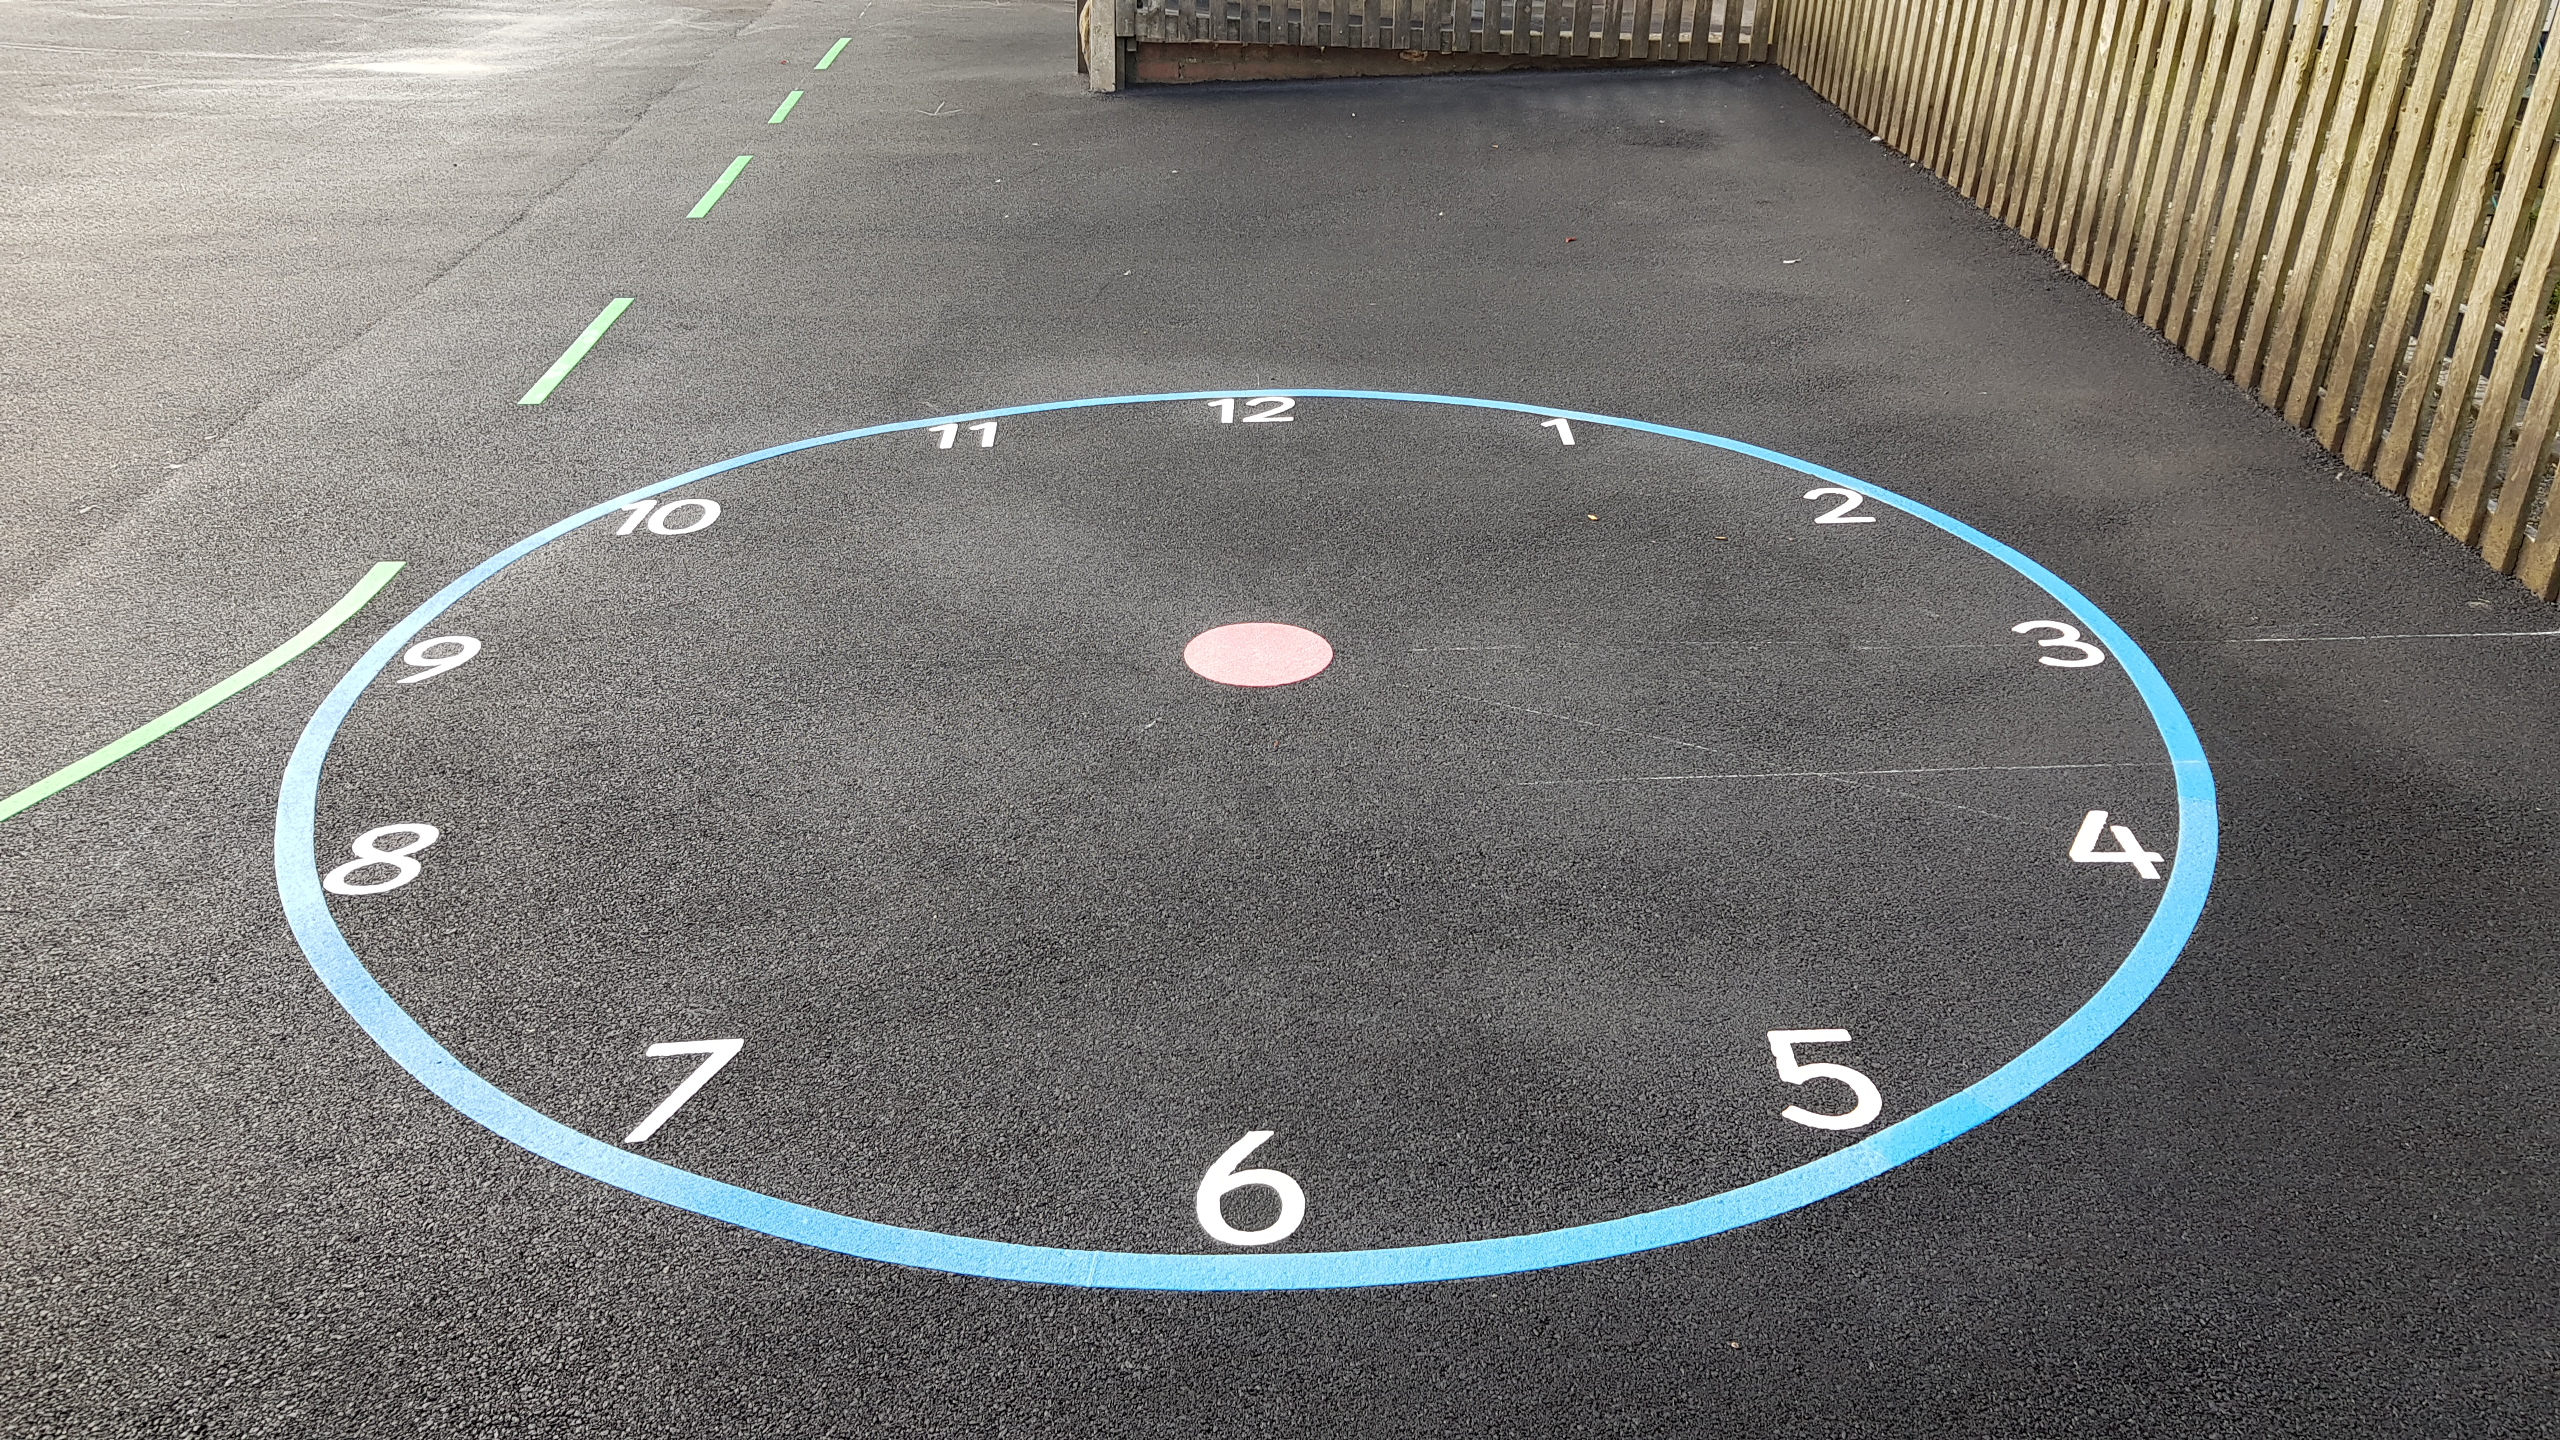 P16 Playground Tarmac Surfacing & Playground Markings at Ashover Primary School in Ashover